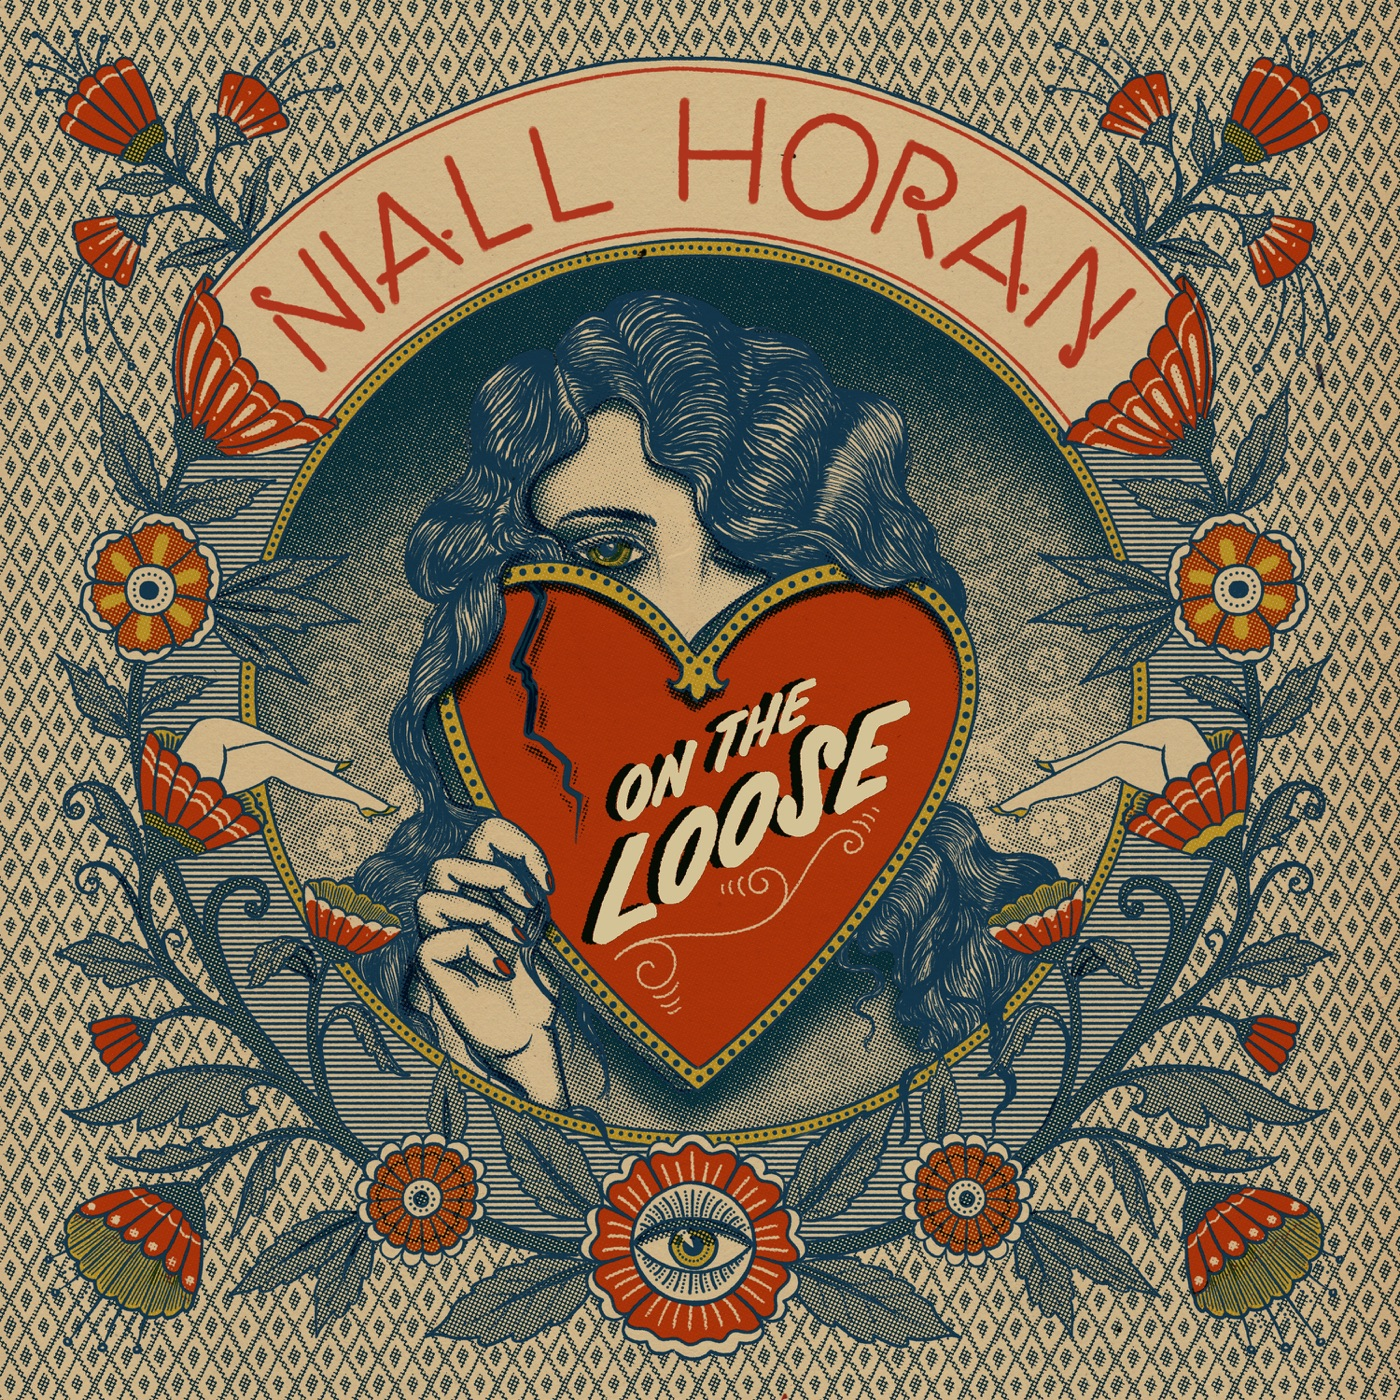 Niall Horan - On the Loose (Alternate Version) - Single Cover